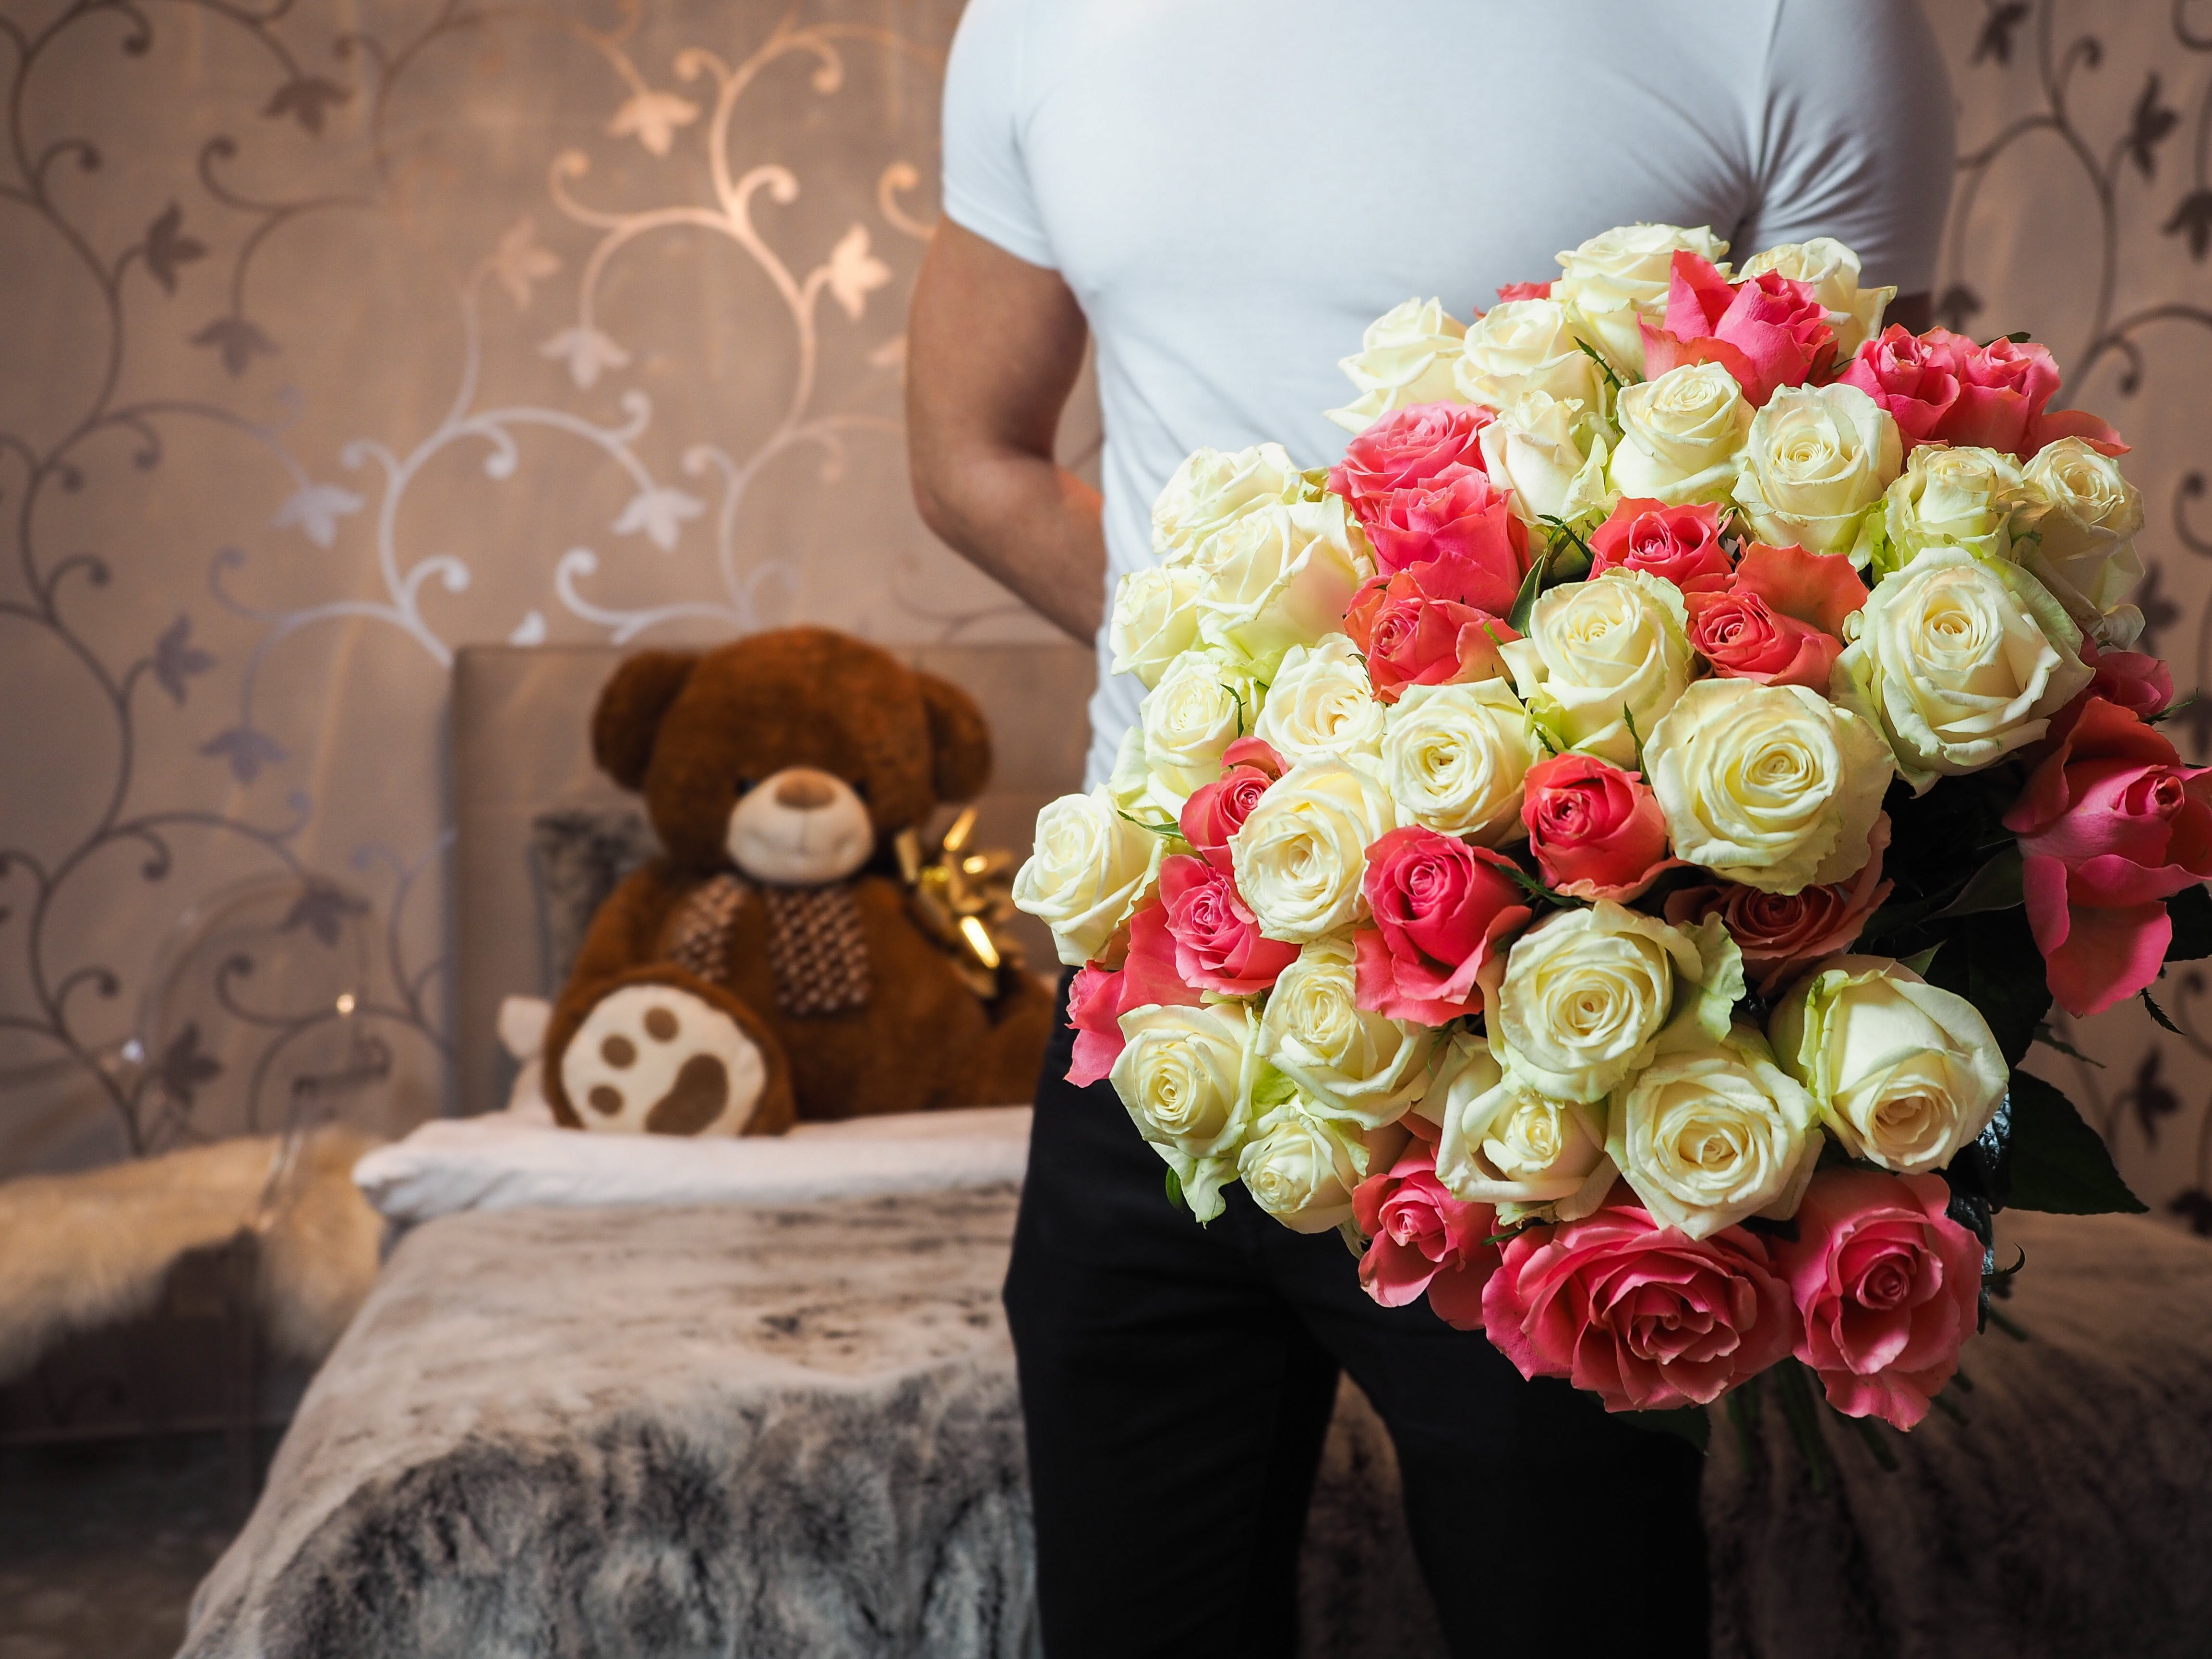 Free stock photo of man, flowers, petals, gift